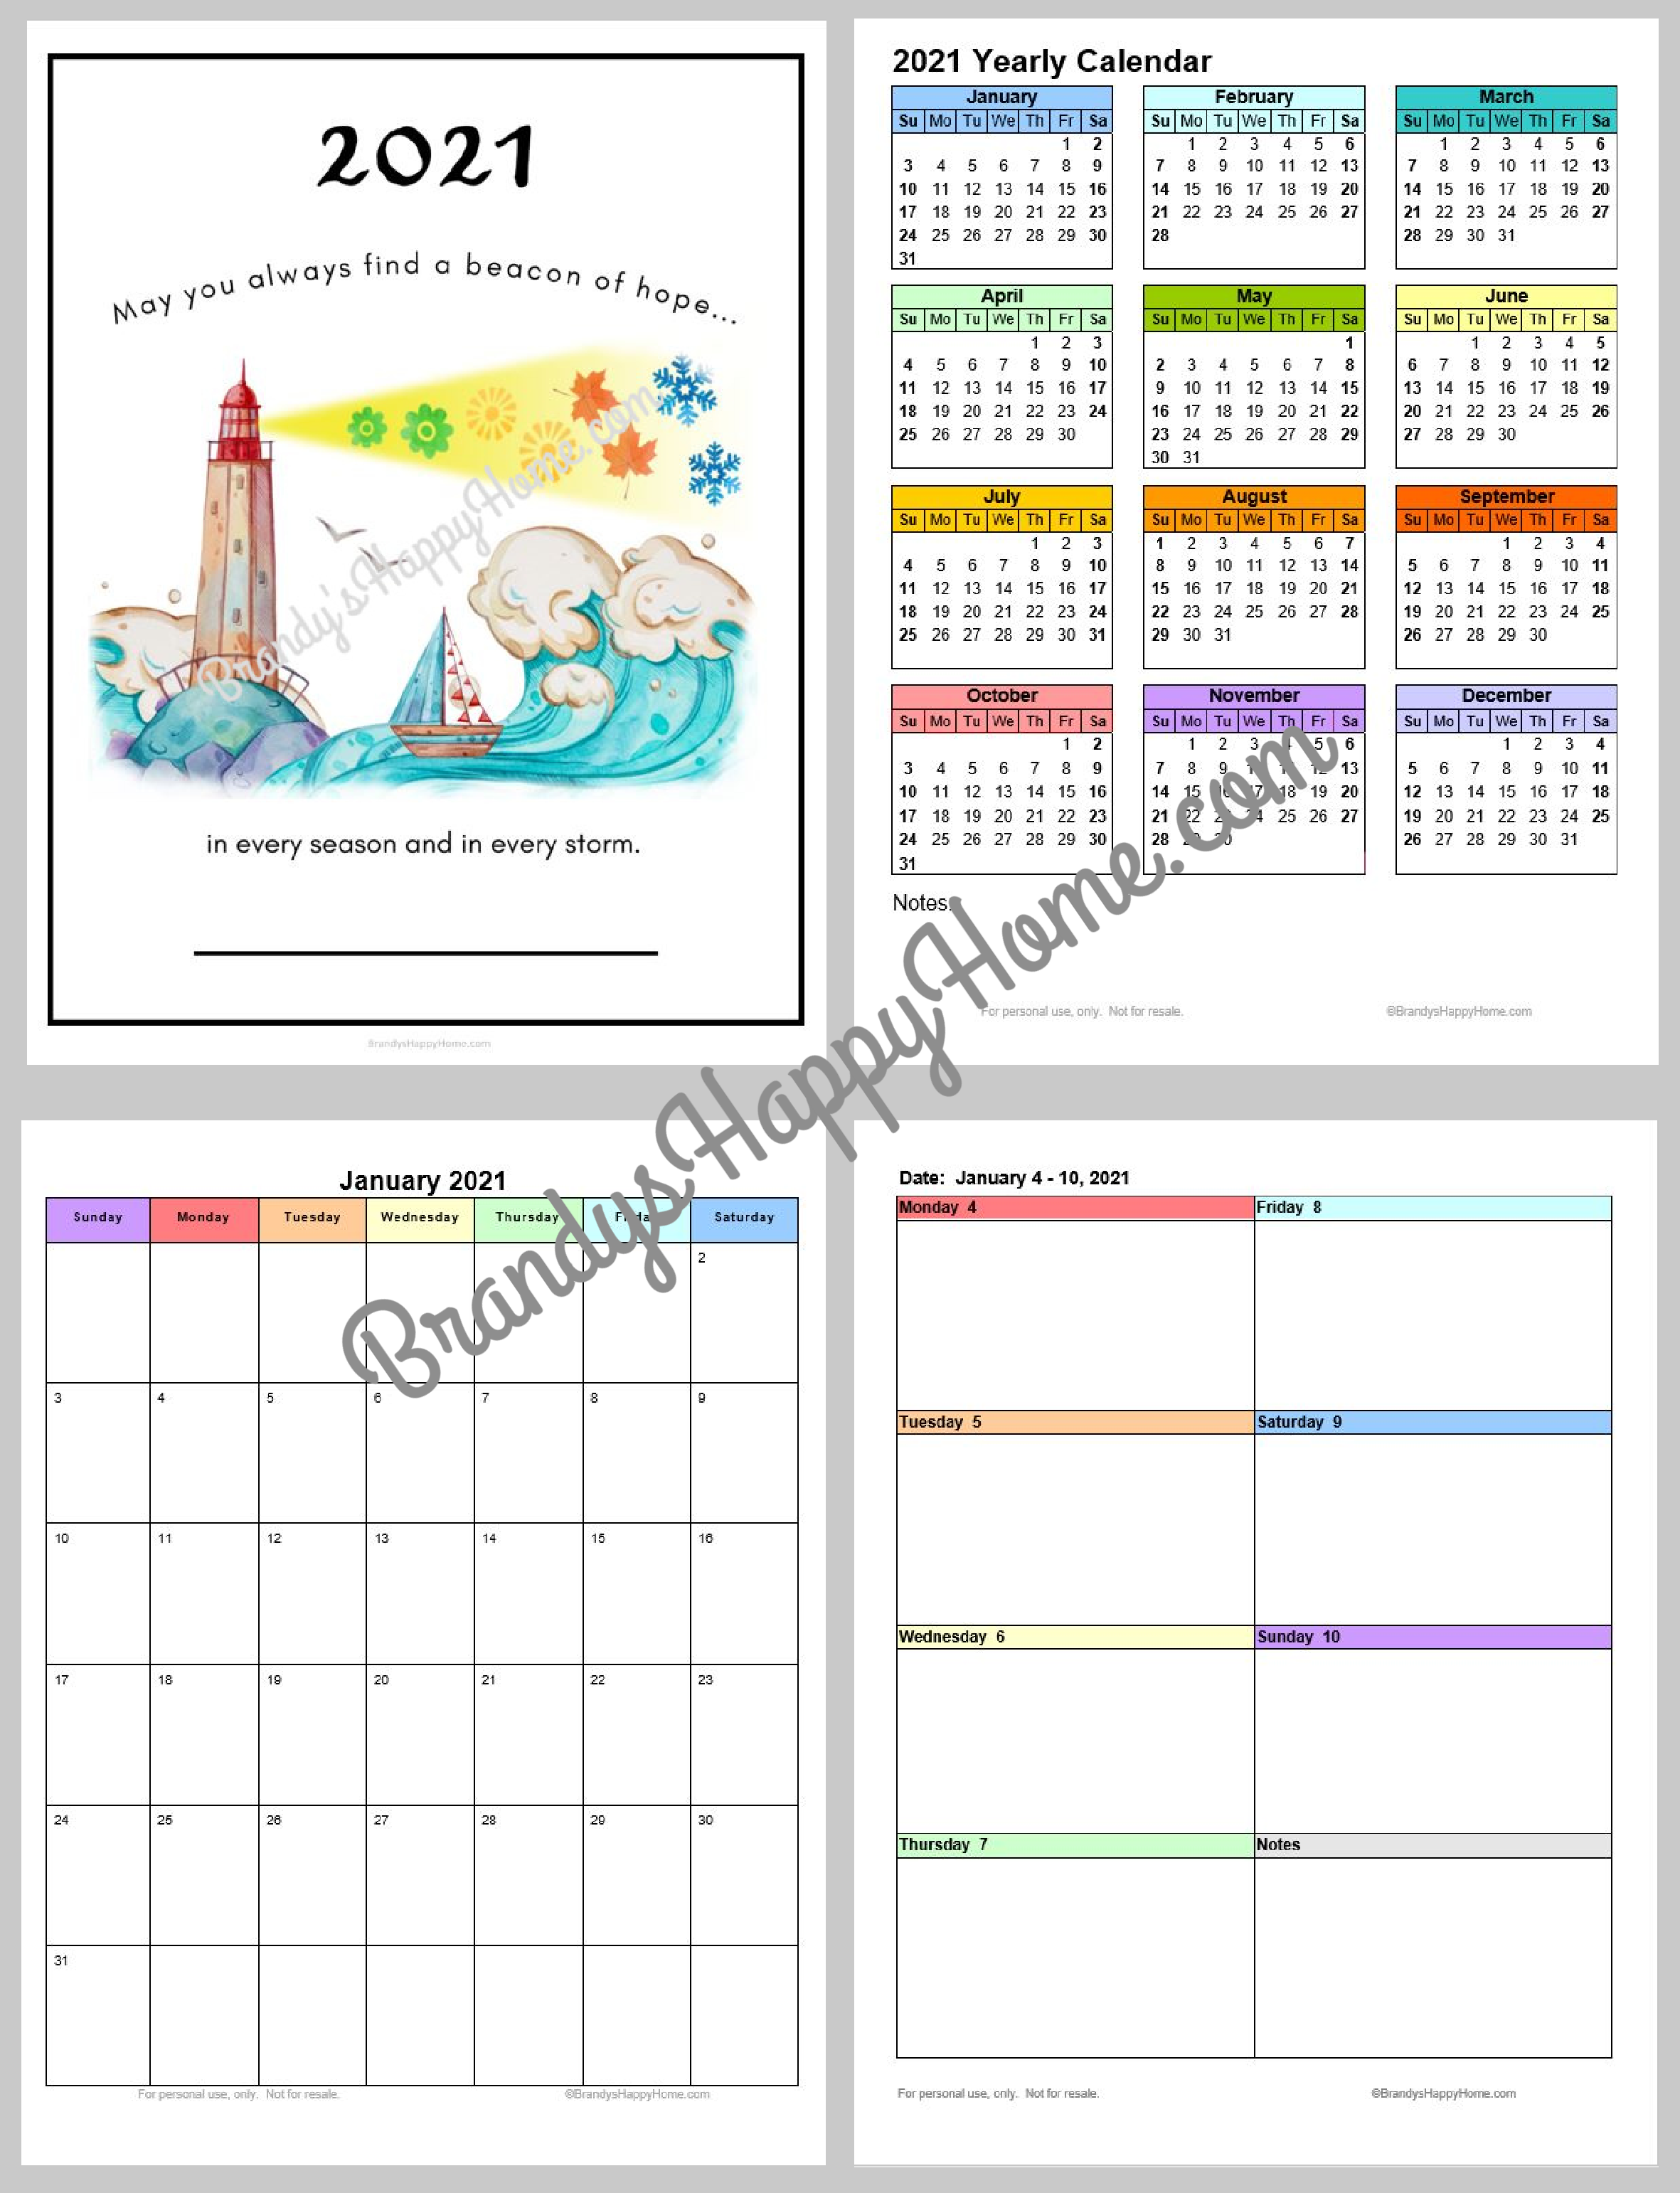 Free 2021 Yearly Calender Template / Printable 2021 Yearly ...